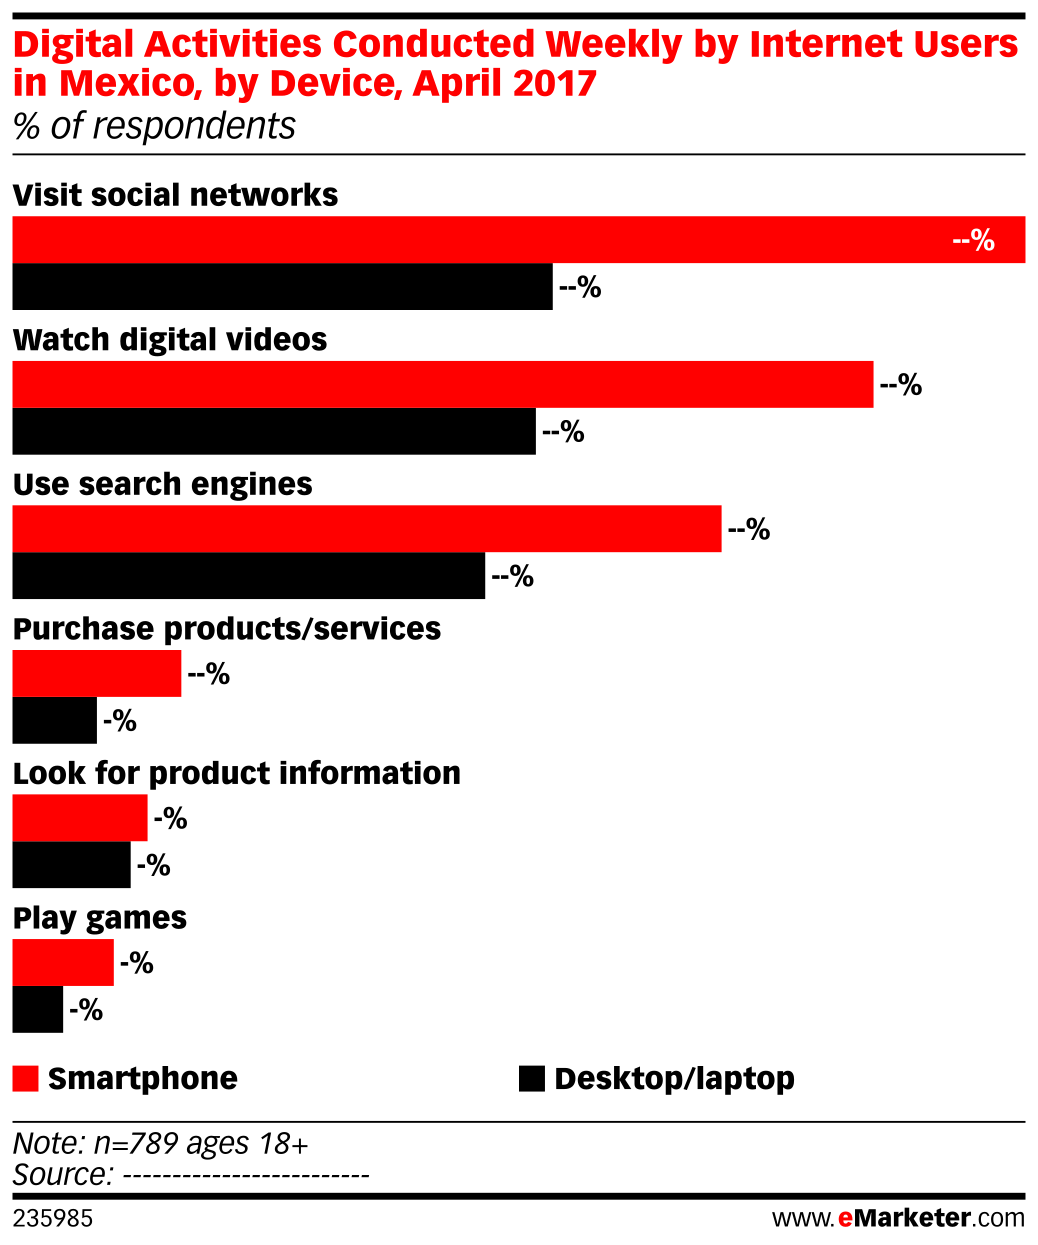 Digital Activities Conducted Weekly by Internet Users in Mexico, by Device, April 2017 (% of respondents)